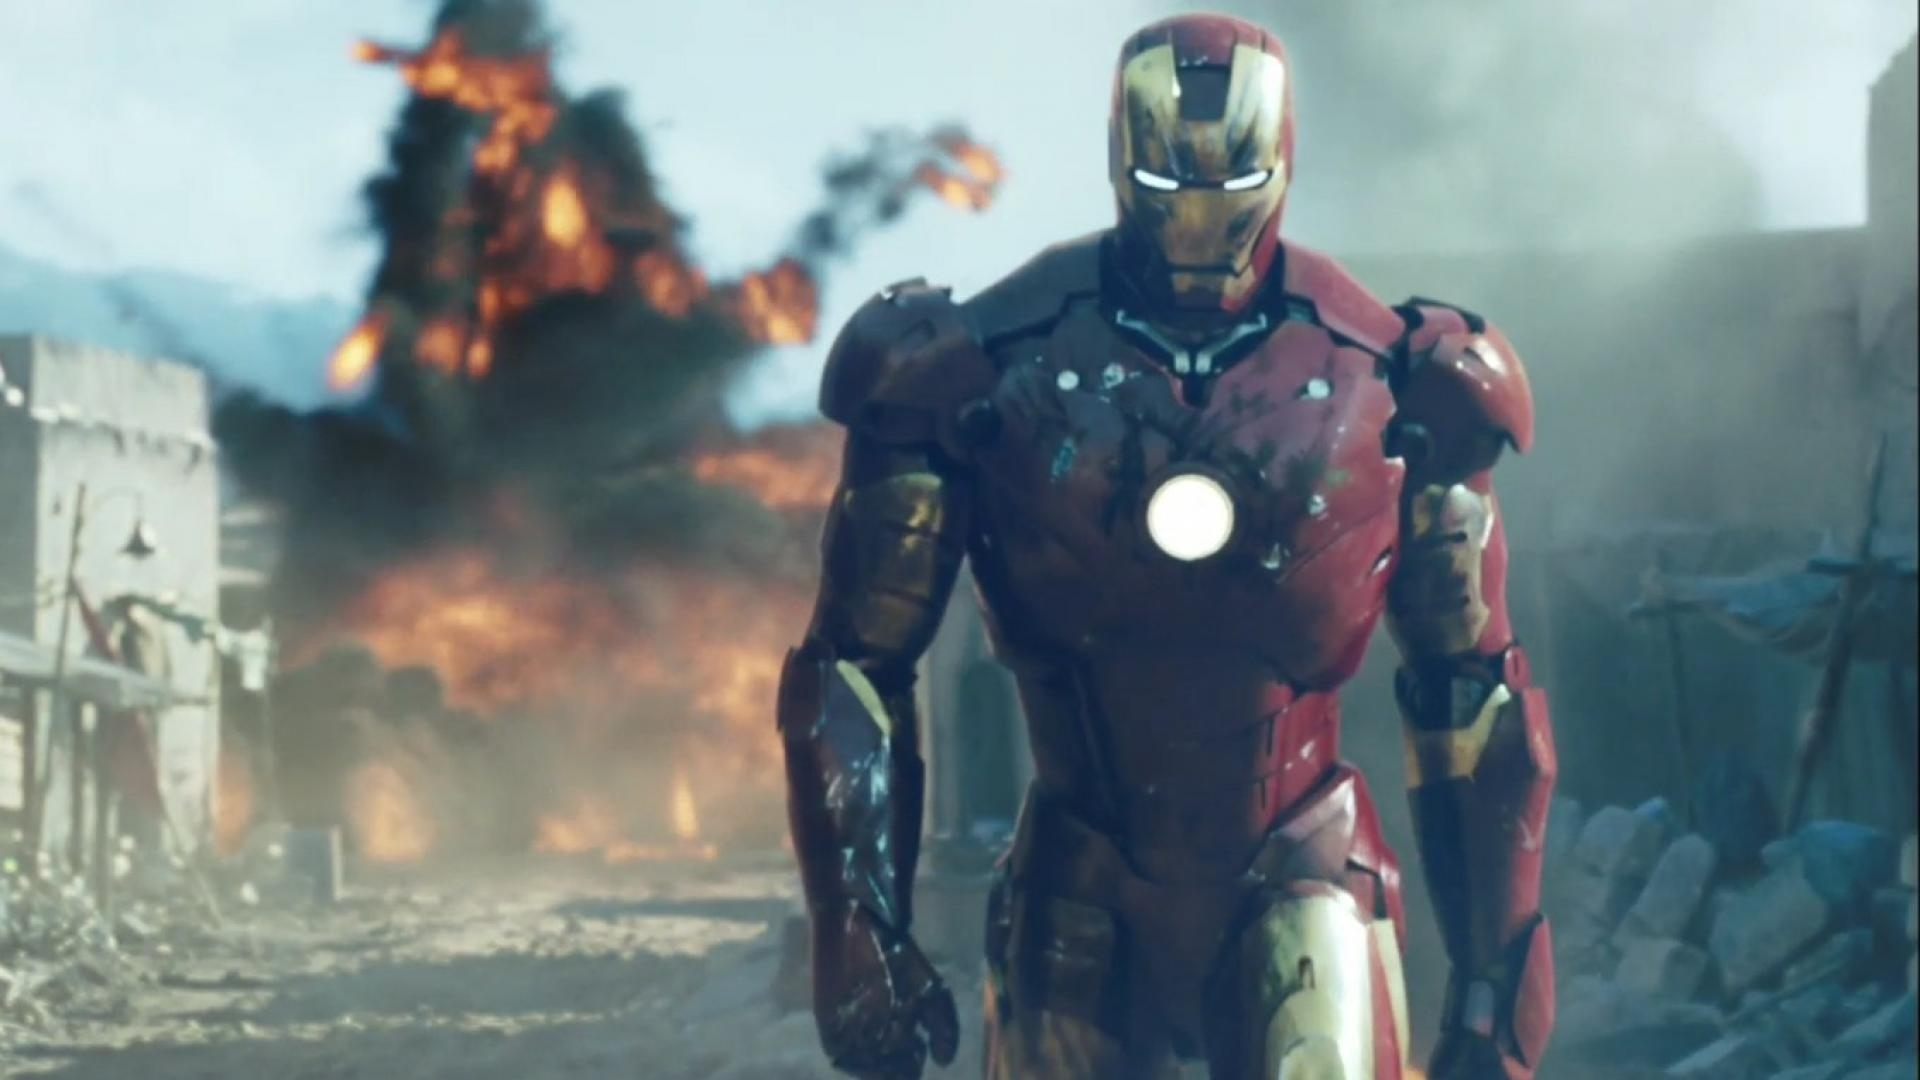 hd wallpapers iron man wallpaper 2560×1440 iron man hd wallpaper (41